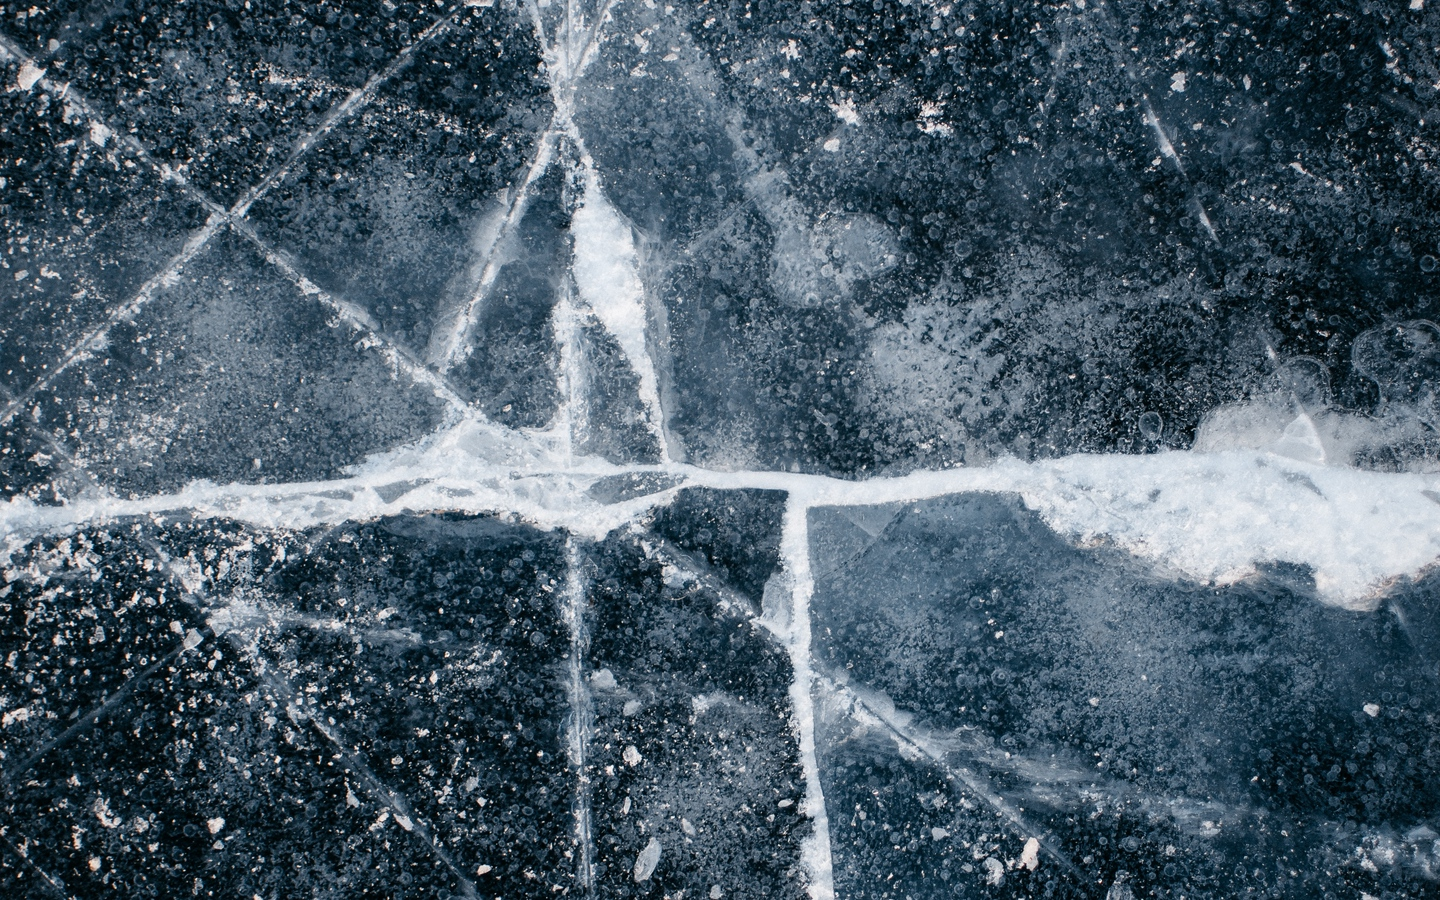 Wallpaper Ice Cranny Surface Iphone 11 Wallpaper Hd 4k 2912595 Hd Wallpaper Backgrounds Download